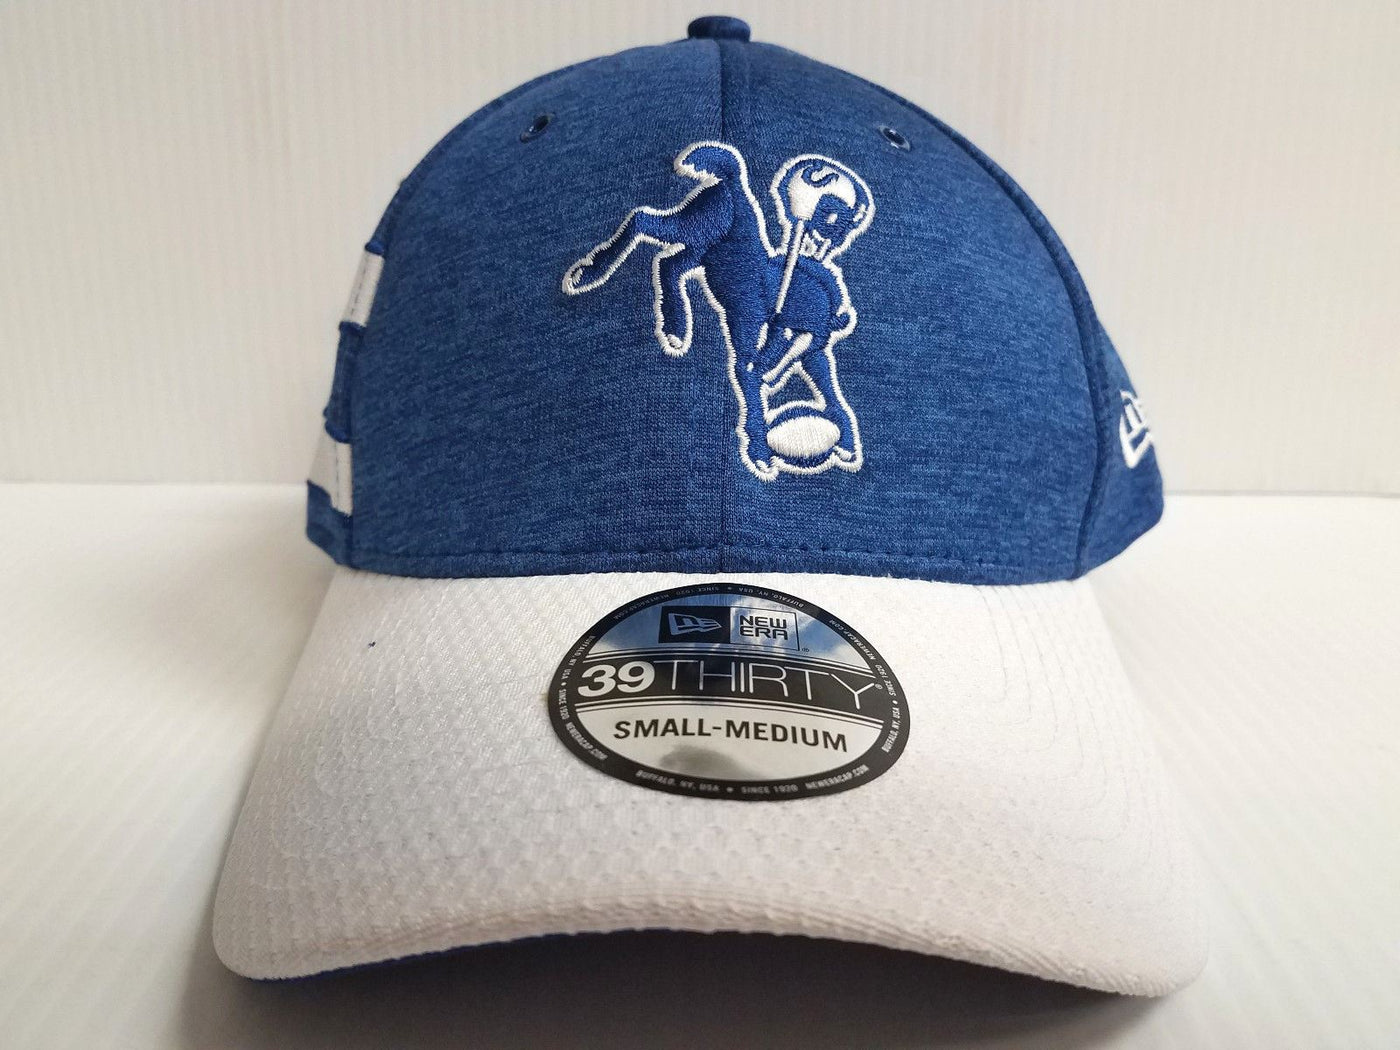 separation shoes 9be1c daf11 ... official store indianapolis colts cap era 39thirty stretch on field  2018 home tb sideline hat 3eafc